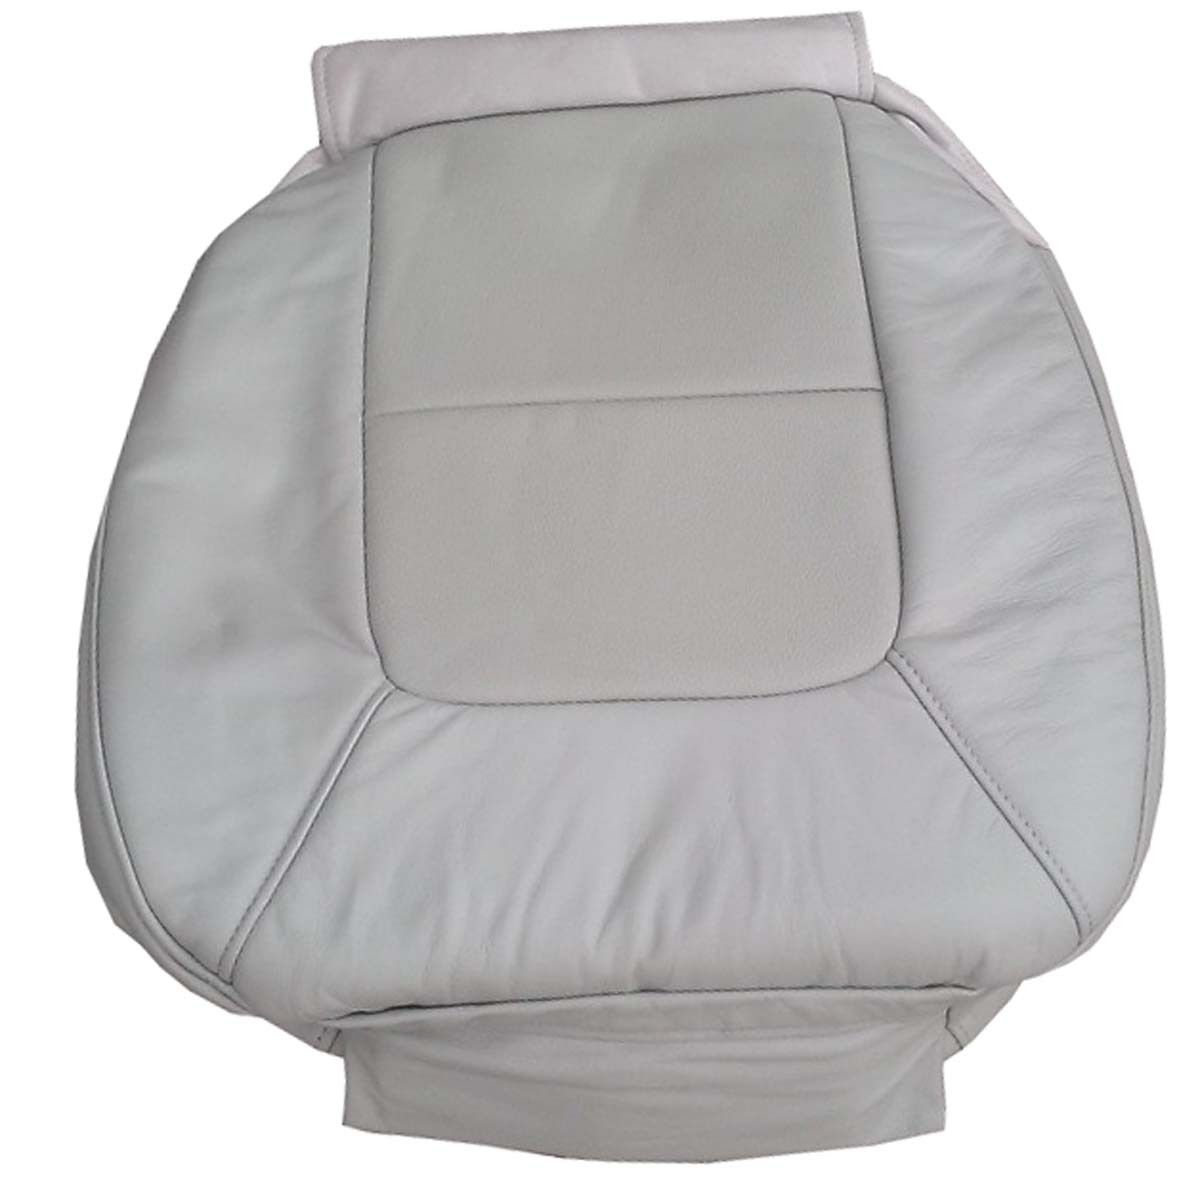 Wondrous Seat Upholstery Leather Covers For Volvo V70 Alphanode Cool Chair Designs And Ideas Alphanodeonline